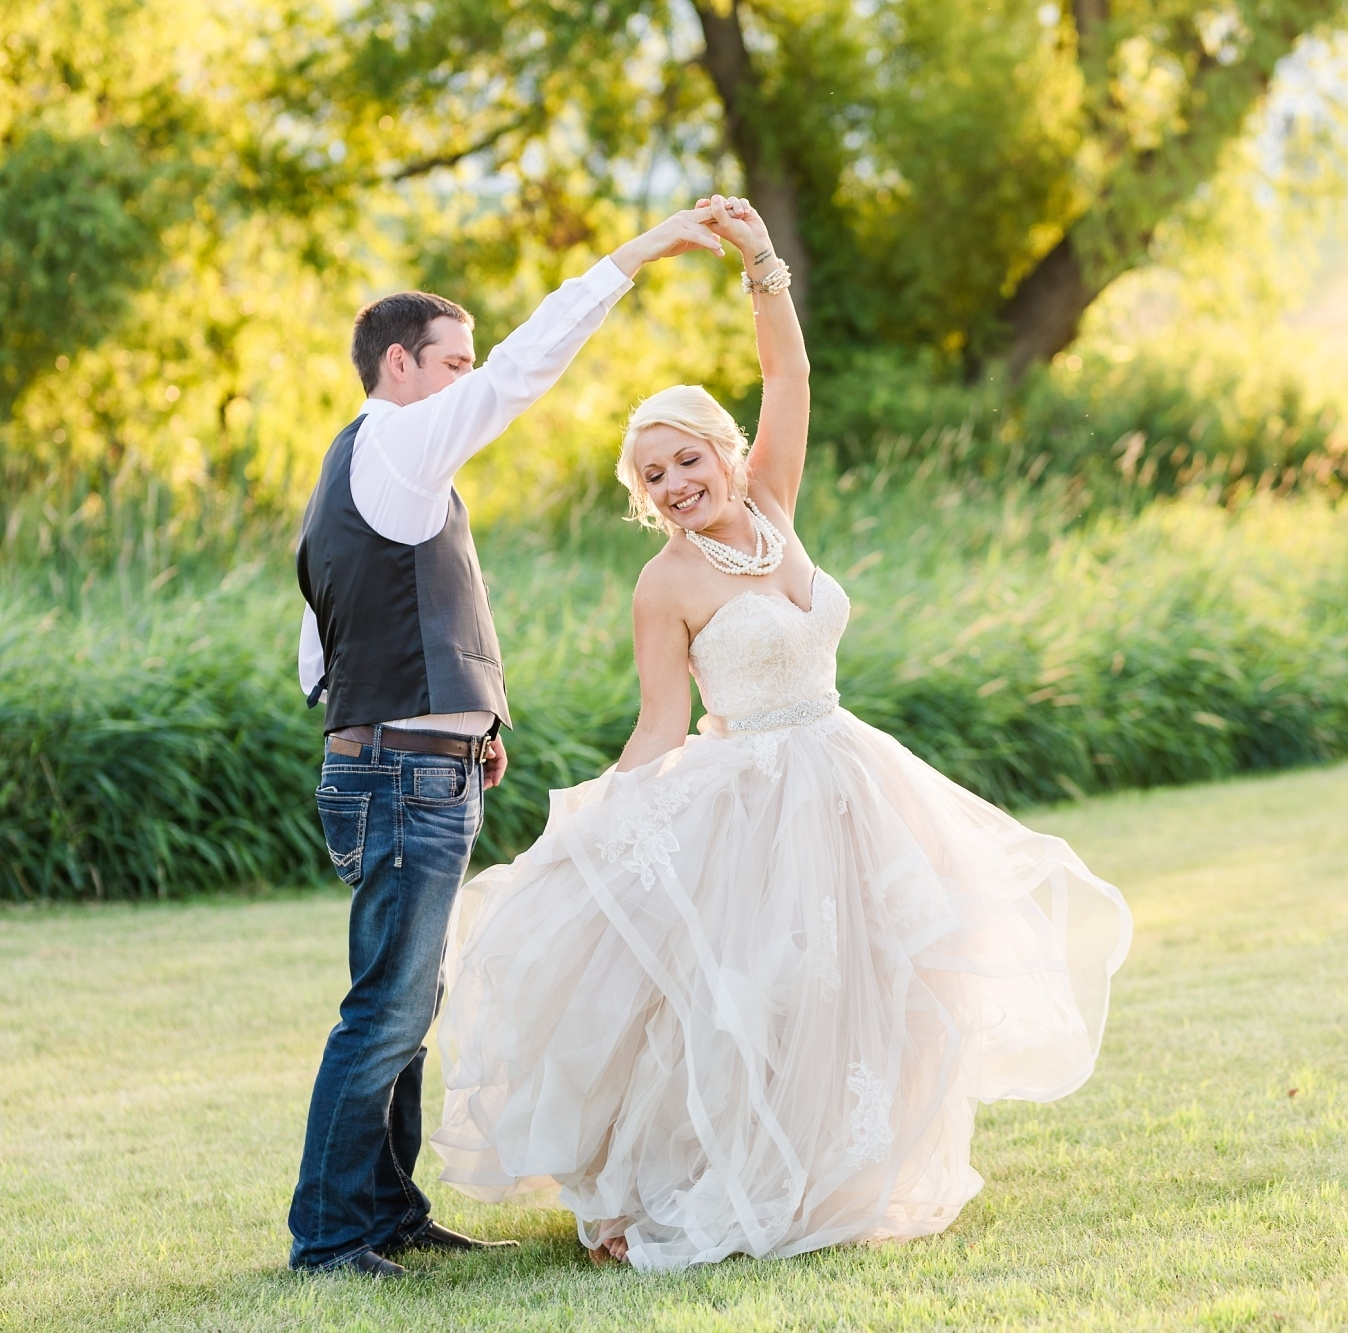 SAMPLE TIMELINE - 9:00/10:00 am - HAIR & MAKEUP STARTS11:00am/1:00 pm - PHOTOGRAPHER ARRIVES1:00 pm - FIRST LOOK2:00 pm - BRIDAL PARTY PORTRAITS2:45 pm - FAMILY PORTRAITS4:00/4:30 pm - CEREMONY5:30/6:30 pm - RECEPTION & MEAL8:00 pm - DANCE8:30/9:00 pm - PHOTOGRAPHY DONE